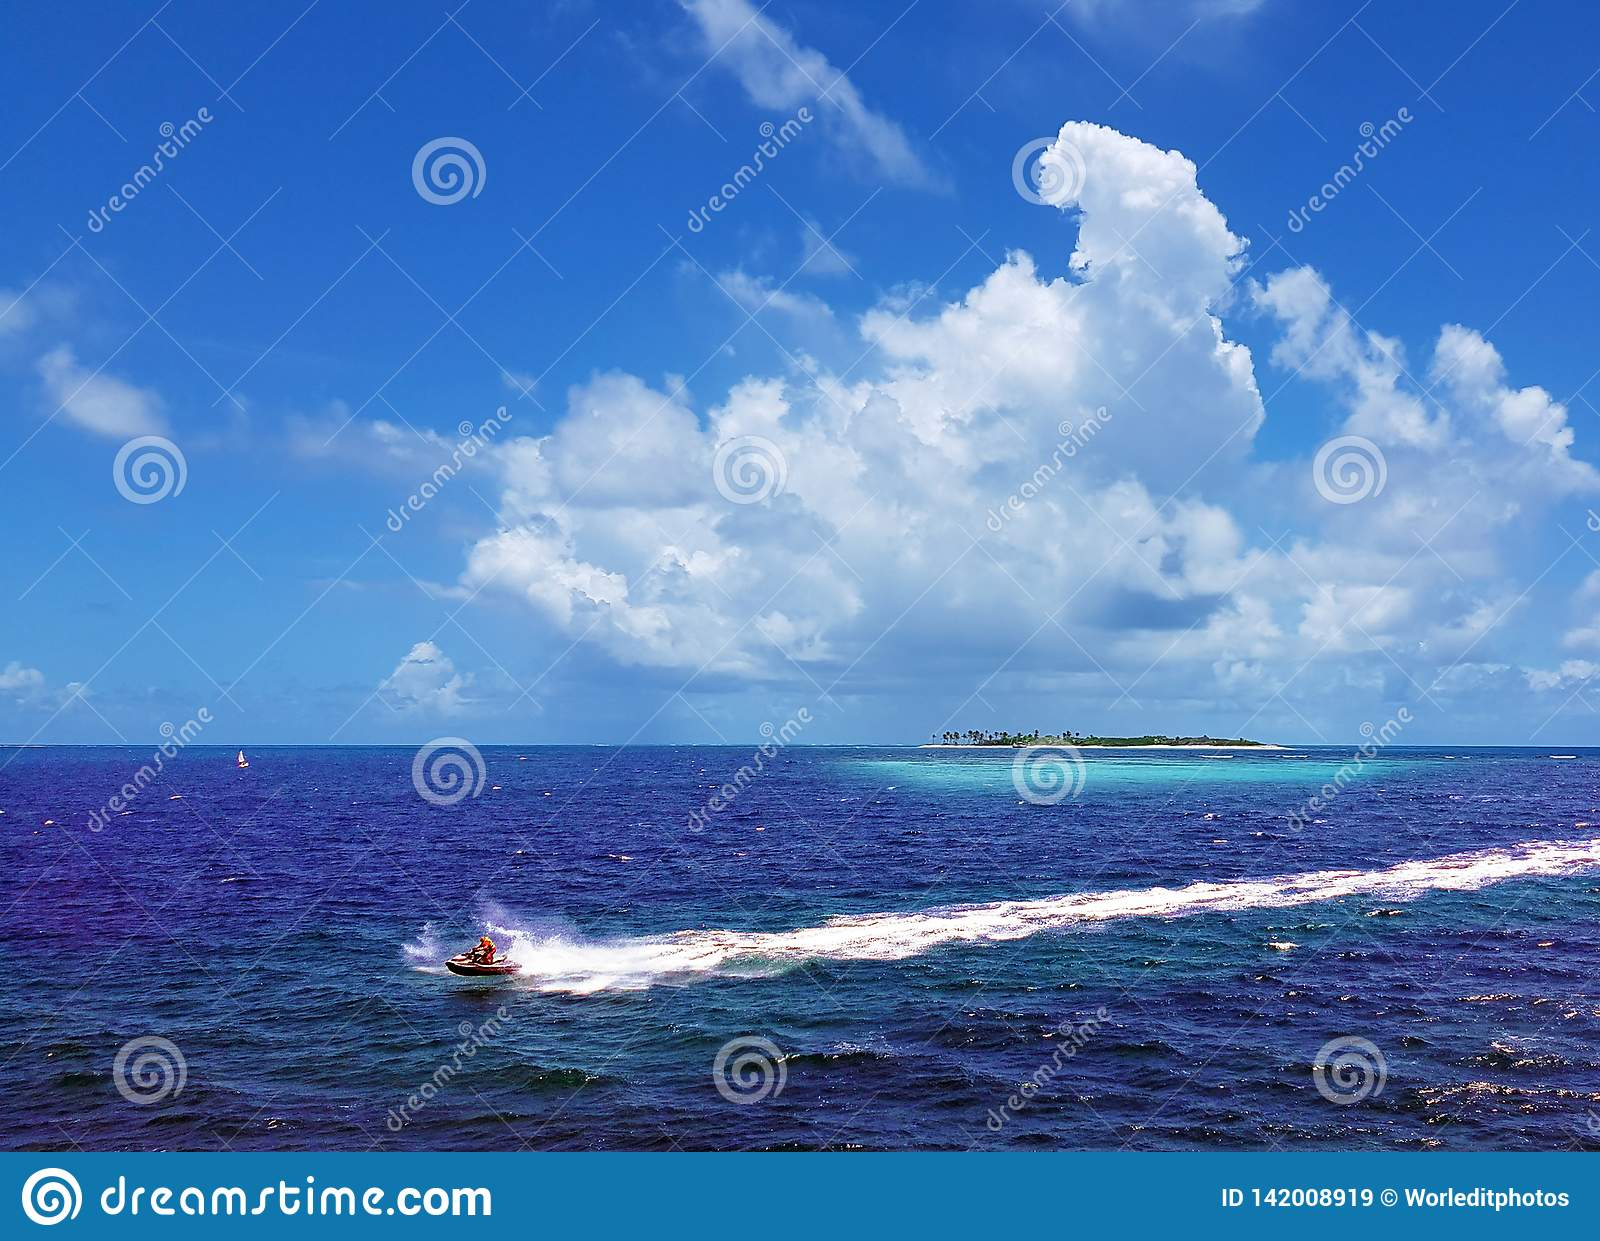 A man is riding a water motorcycle on the blue sea. concept of sport, water recreation